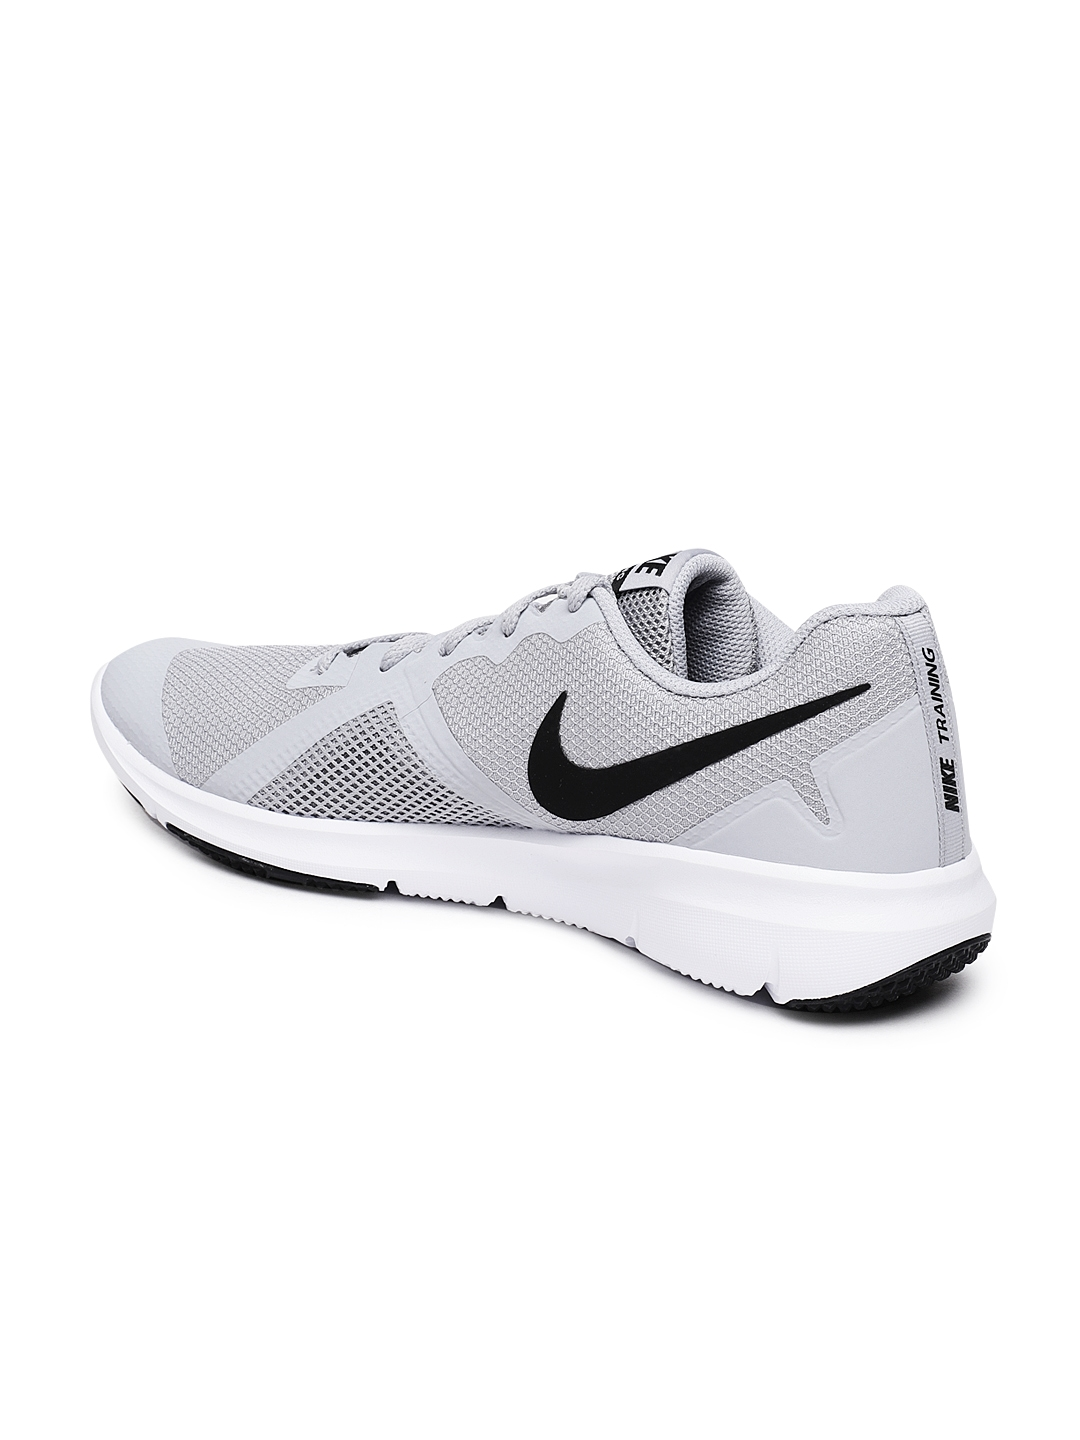 2fc92f5d41752 Buy Nike Men Grey Flex Control II Training Shoes - Sports Shoes for ...